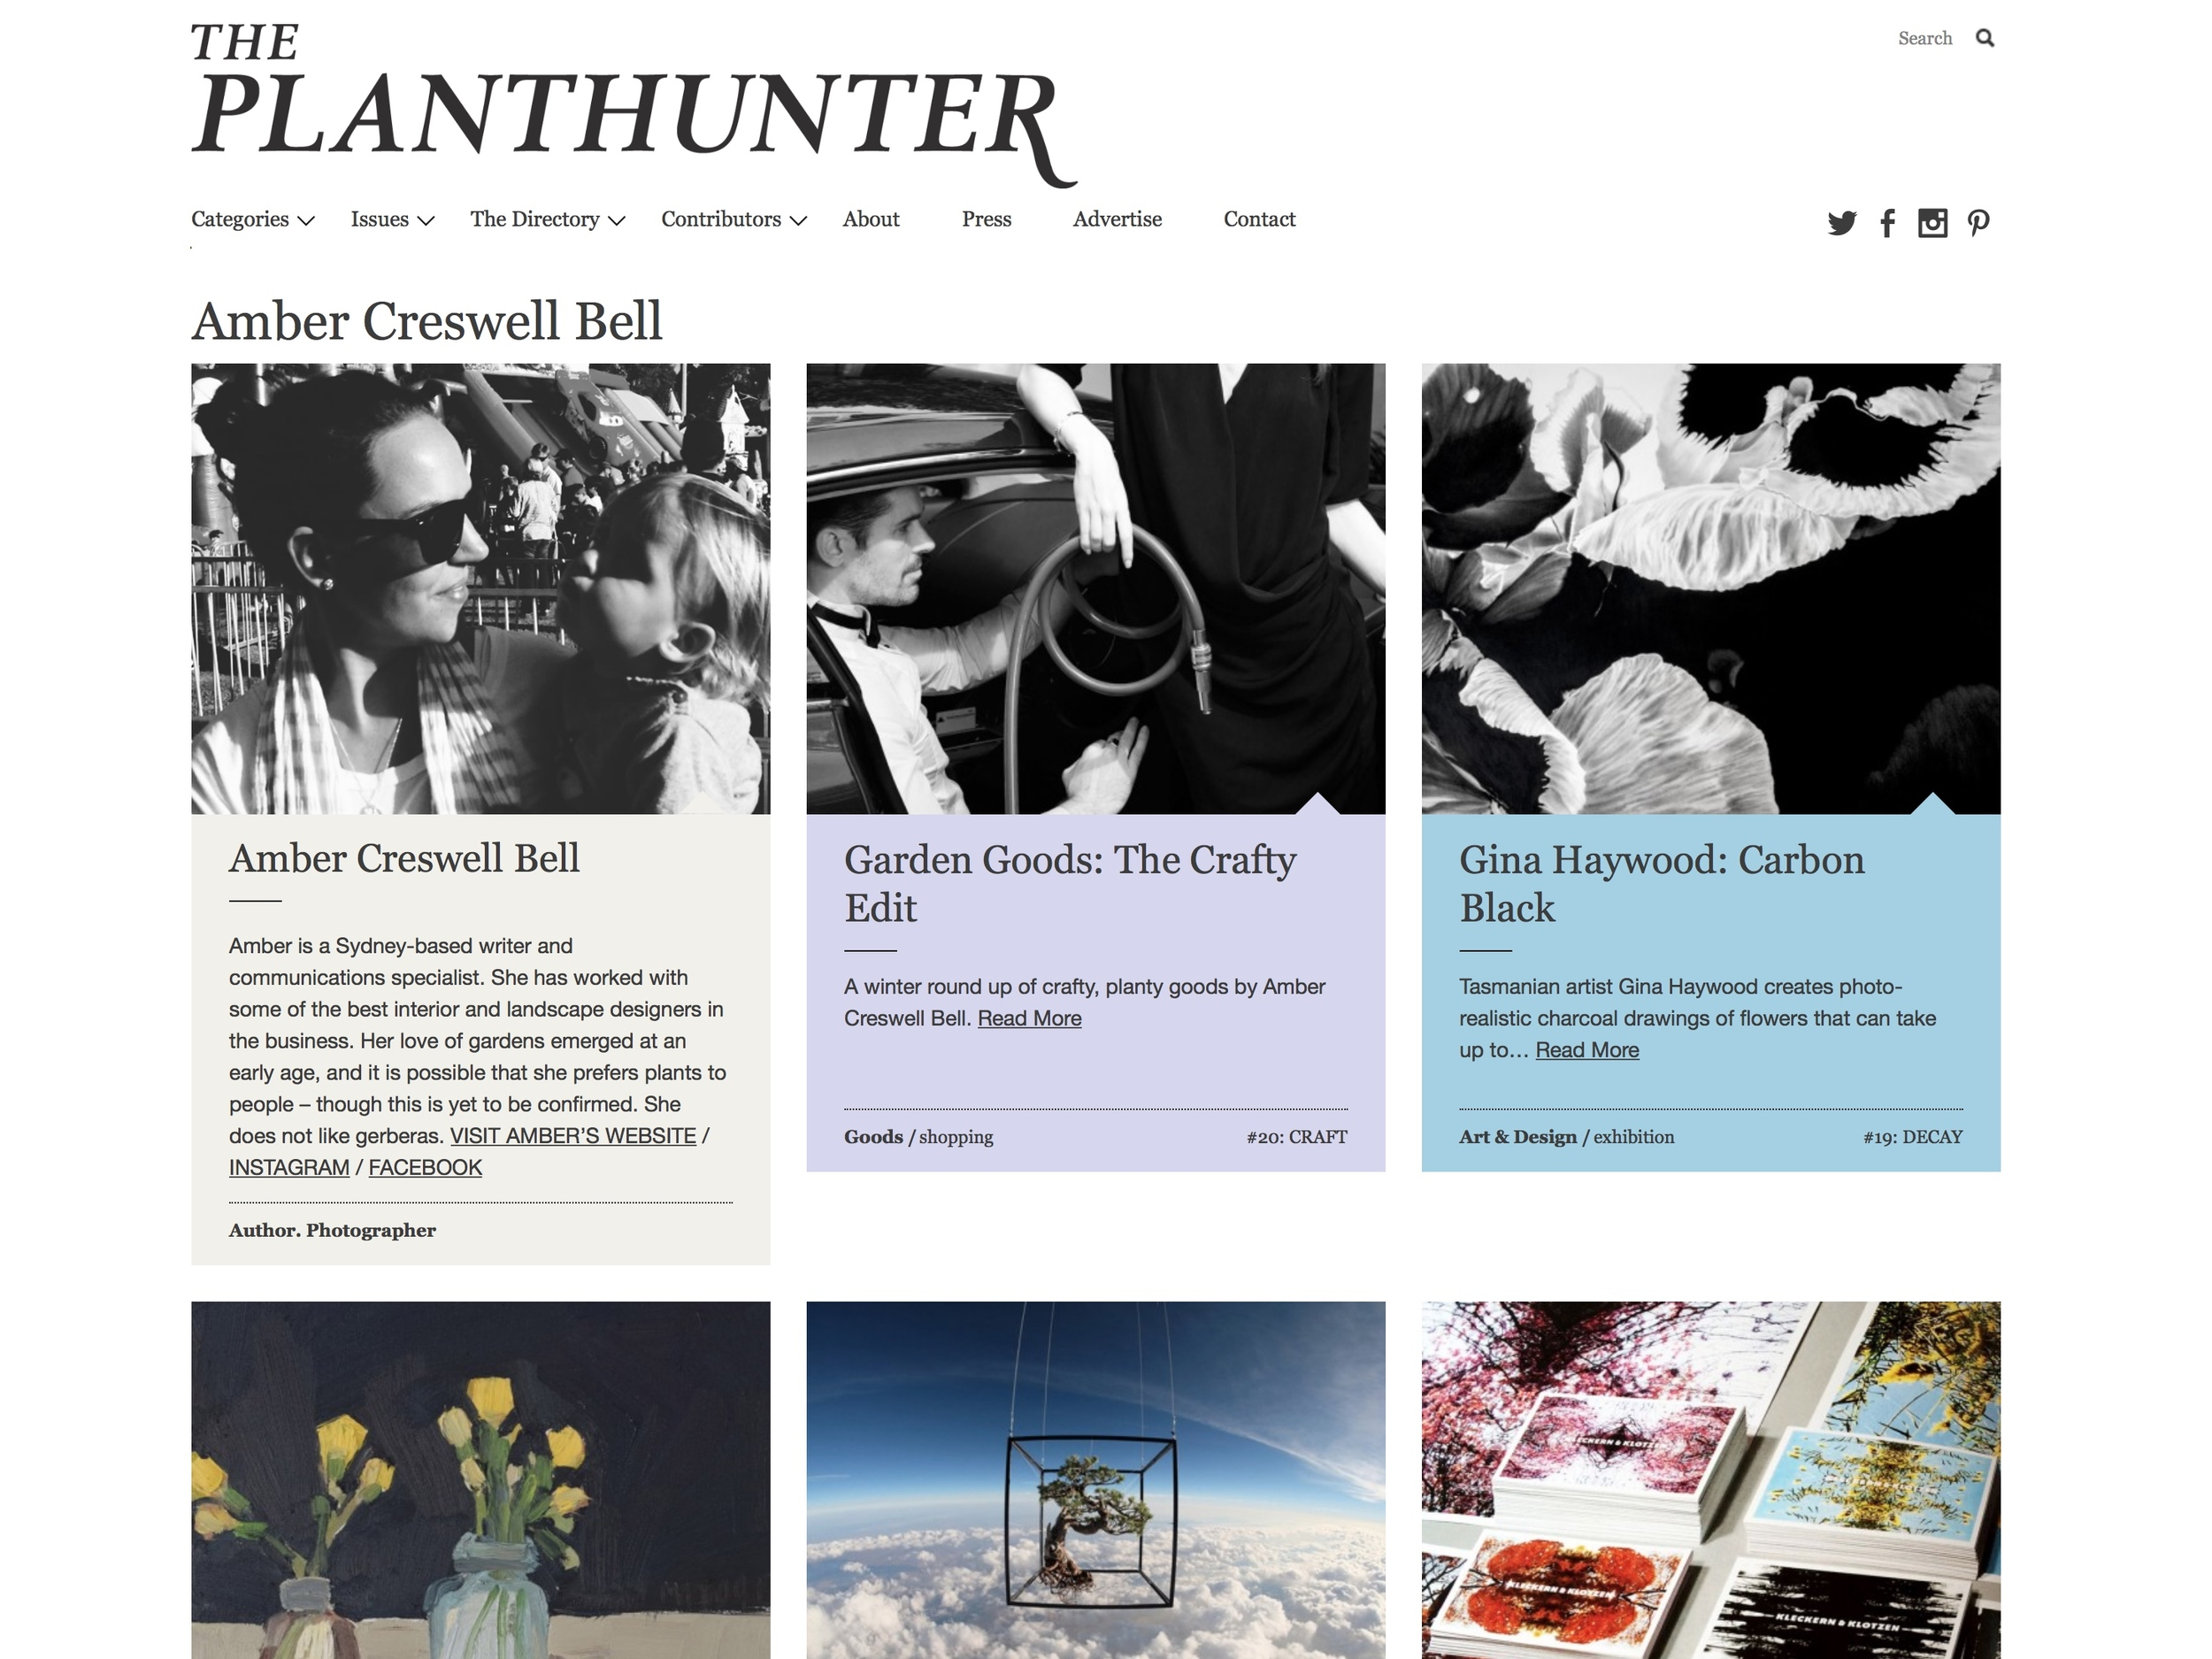 Amber is a regular contributor to The Planthunter.